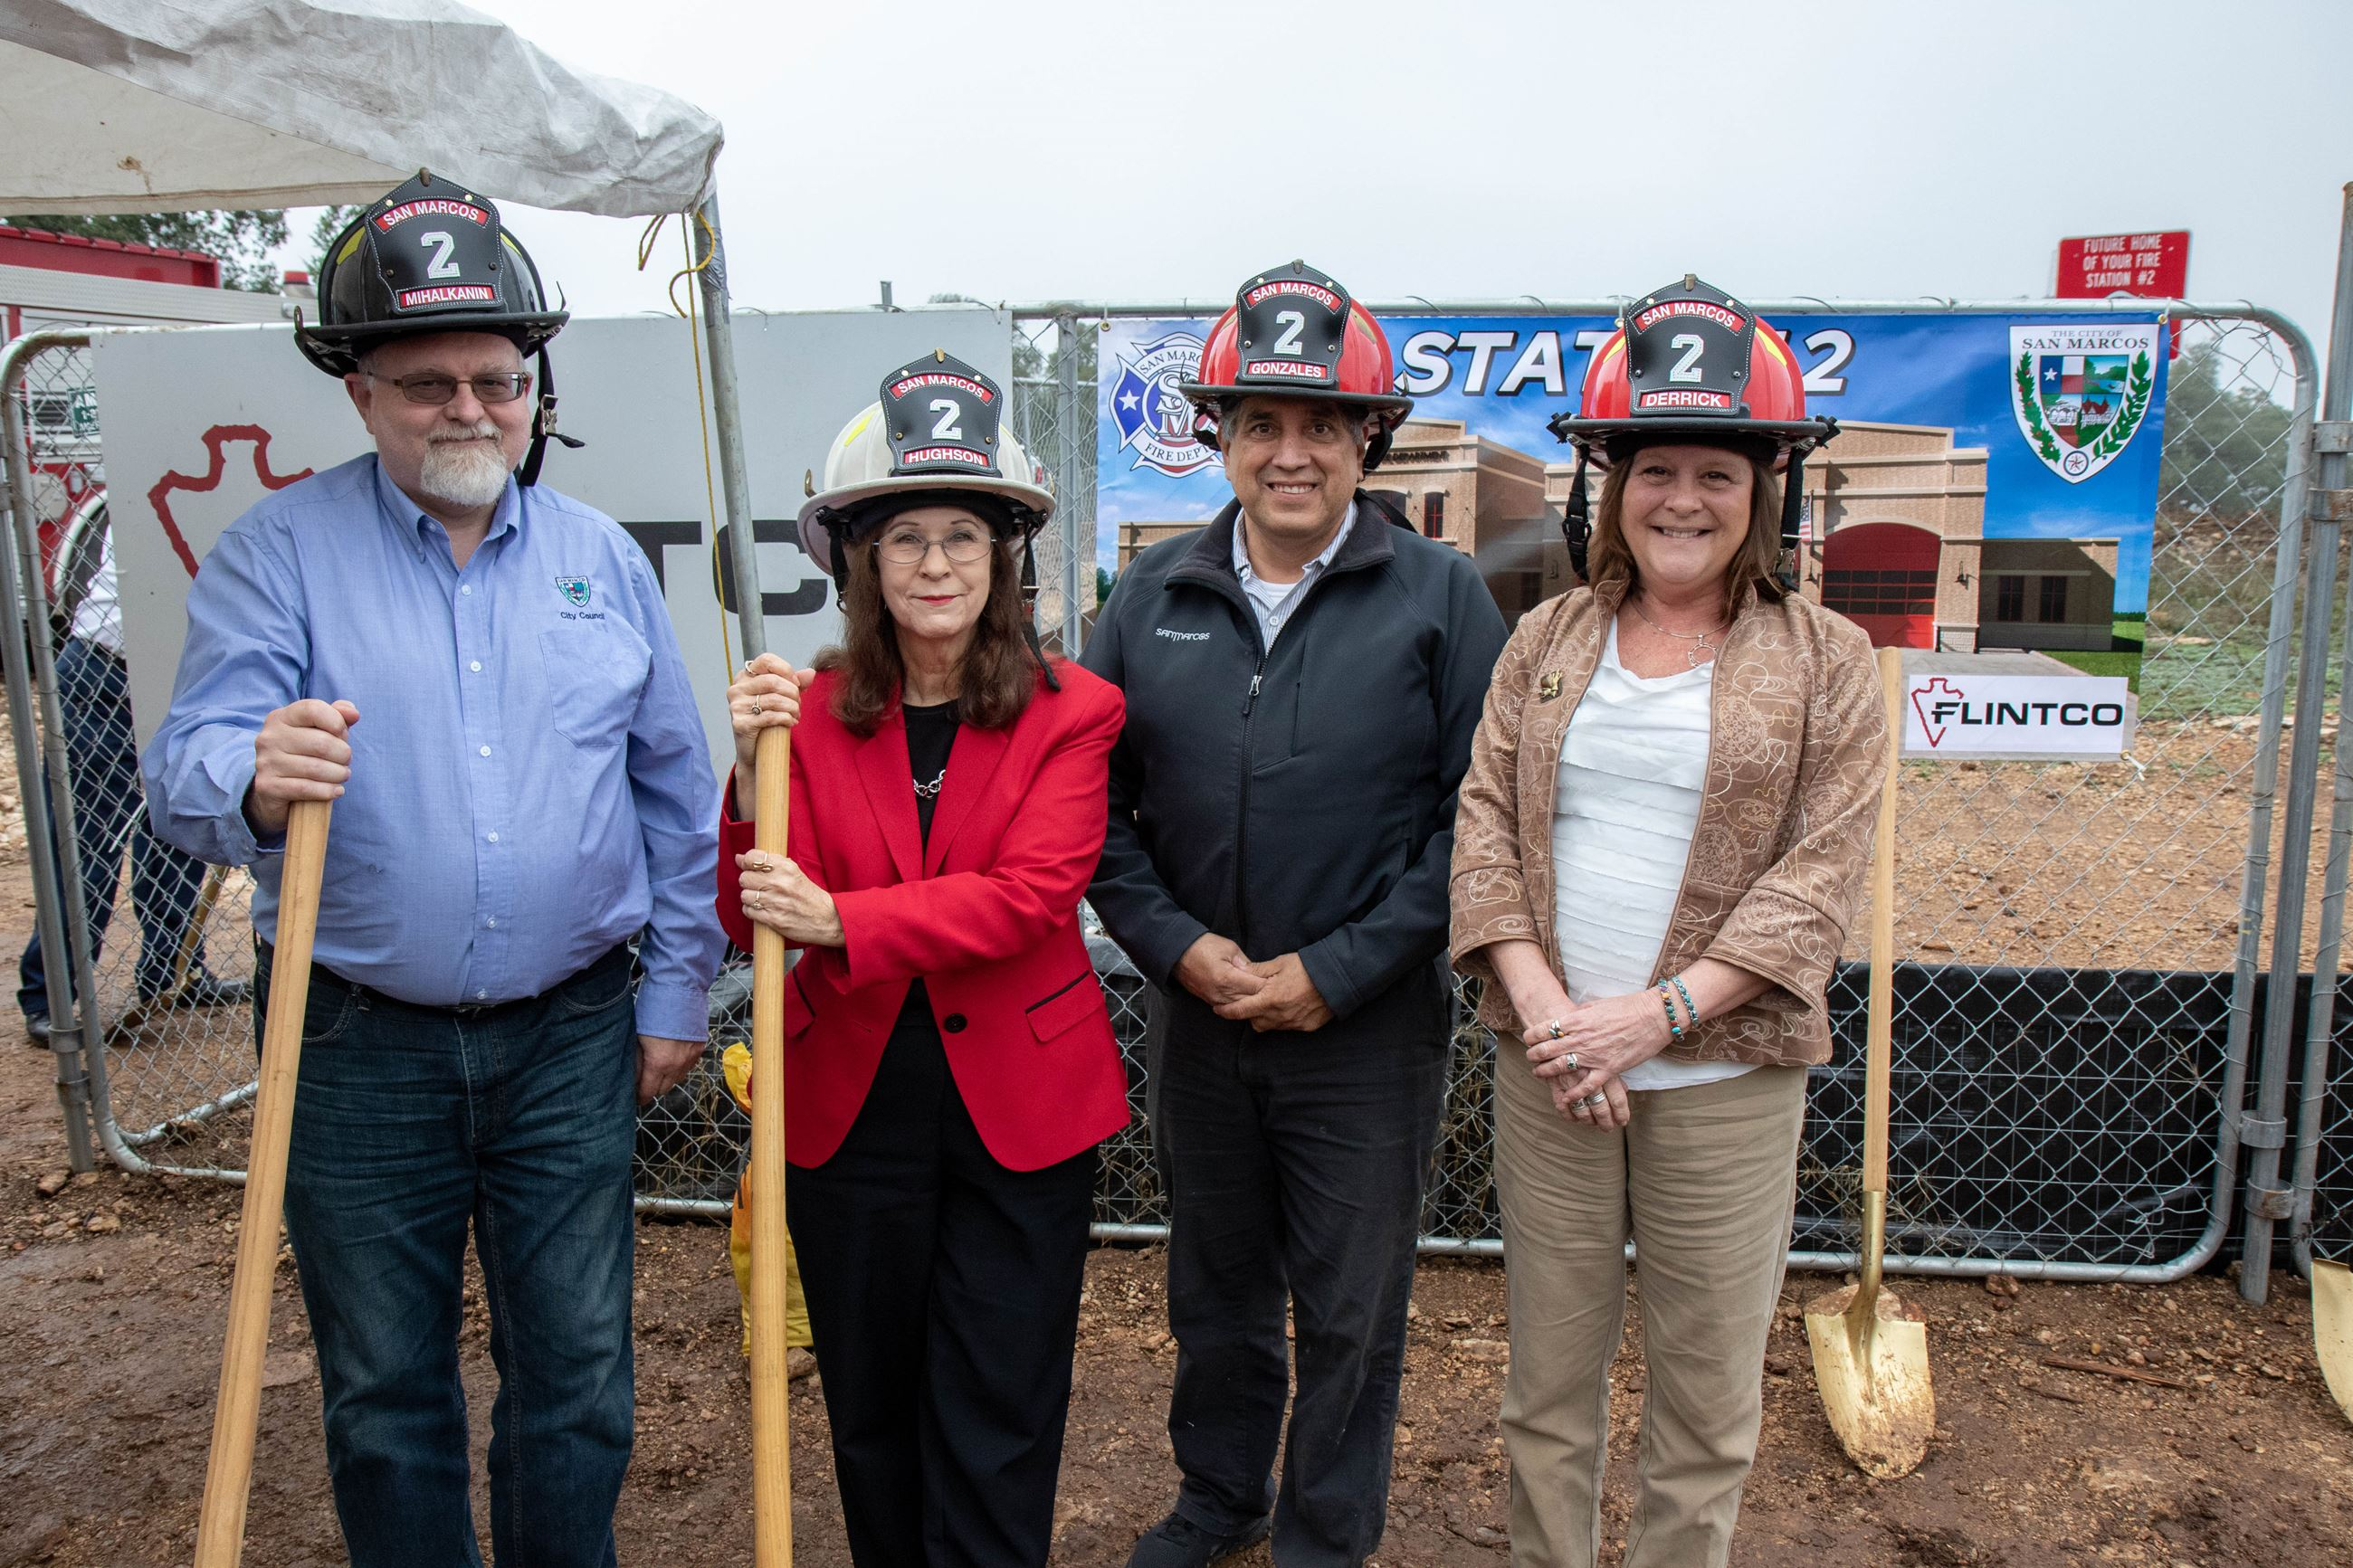 Fire House Groundbreaking-Helmets and Shovels